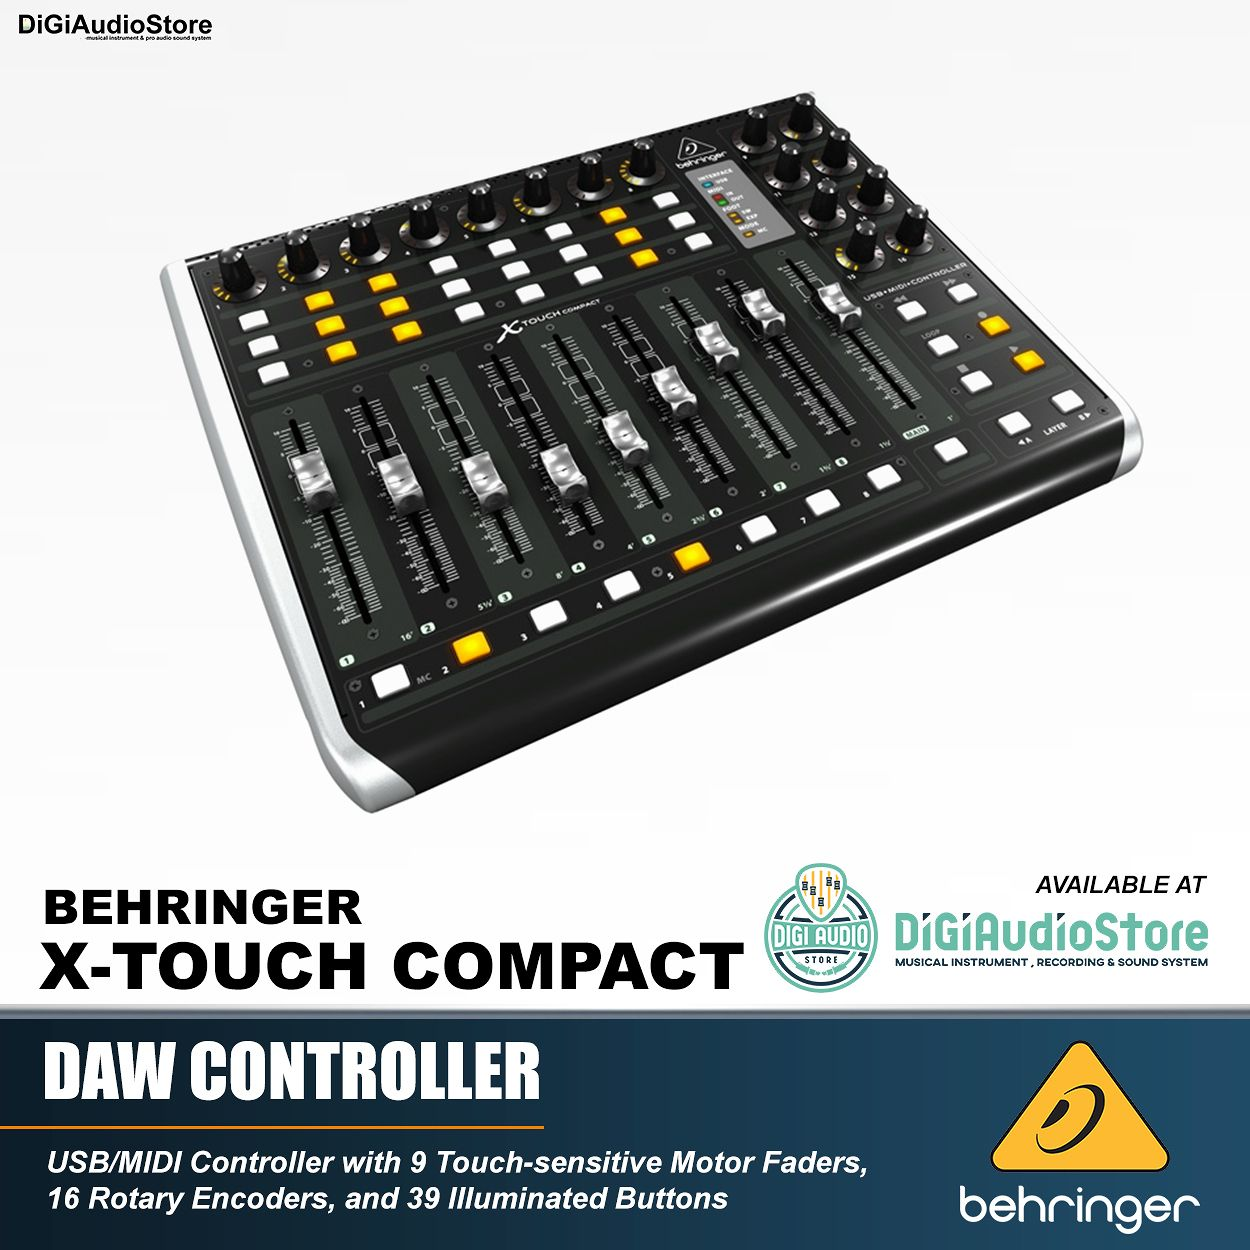 SEKILAS BEHRINGER X-TOUCH COMPACT